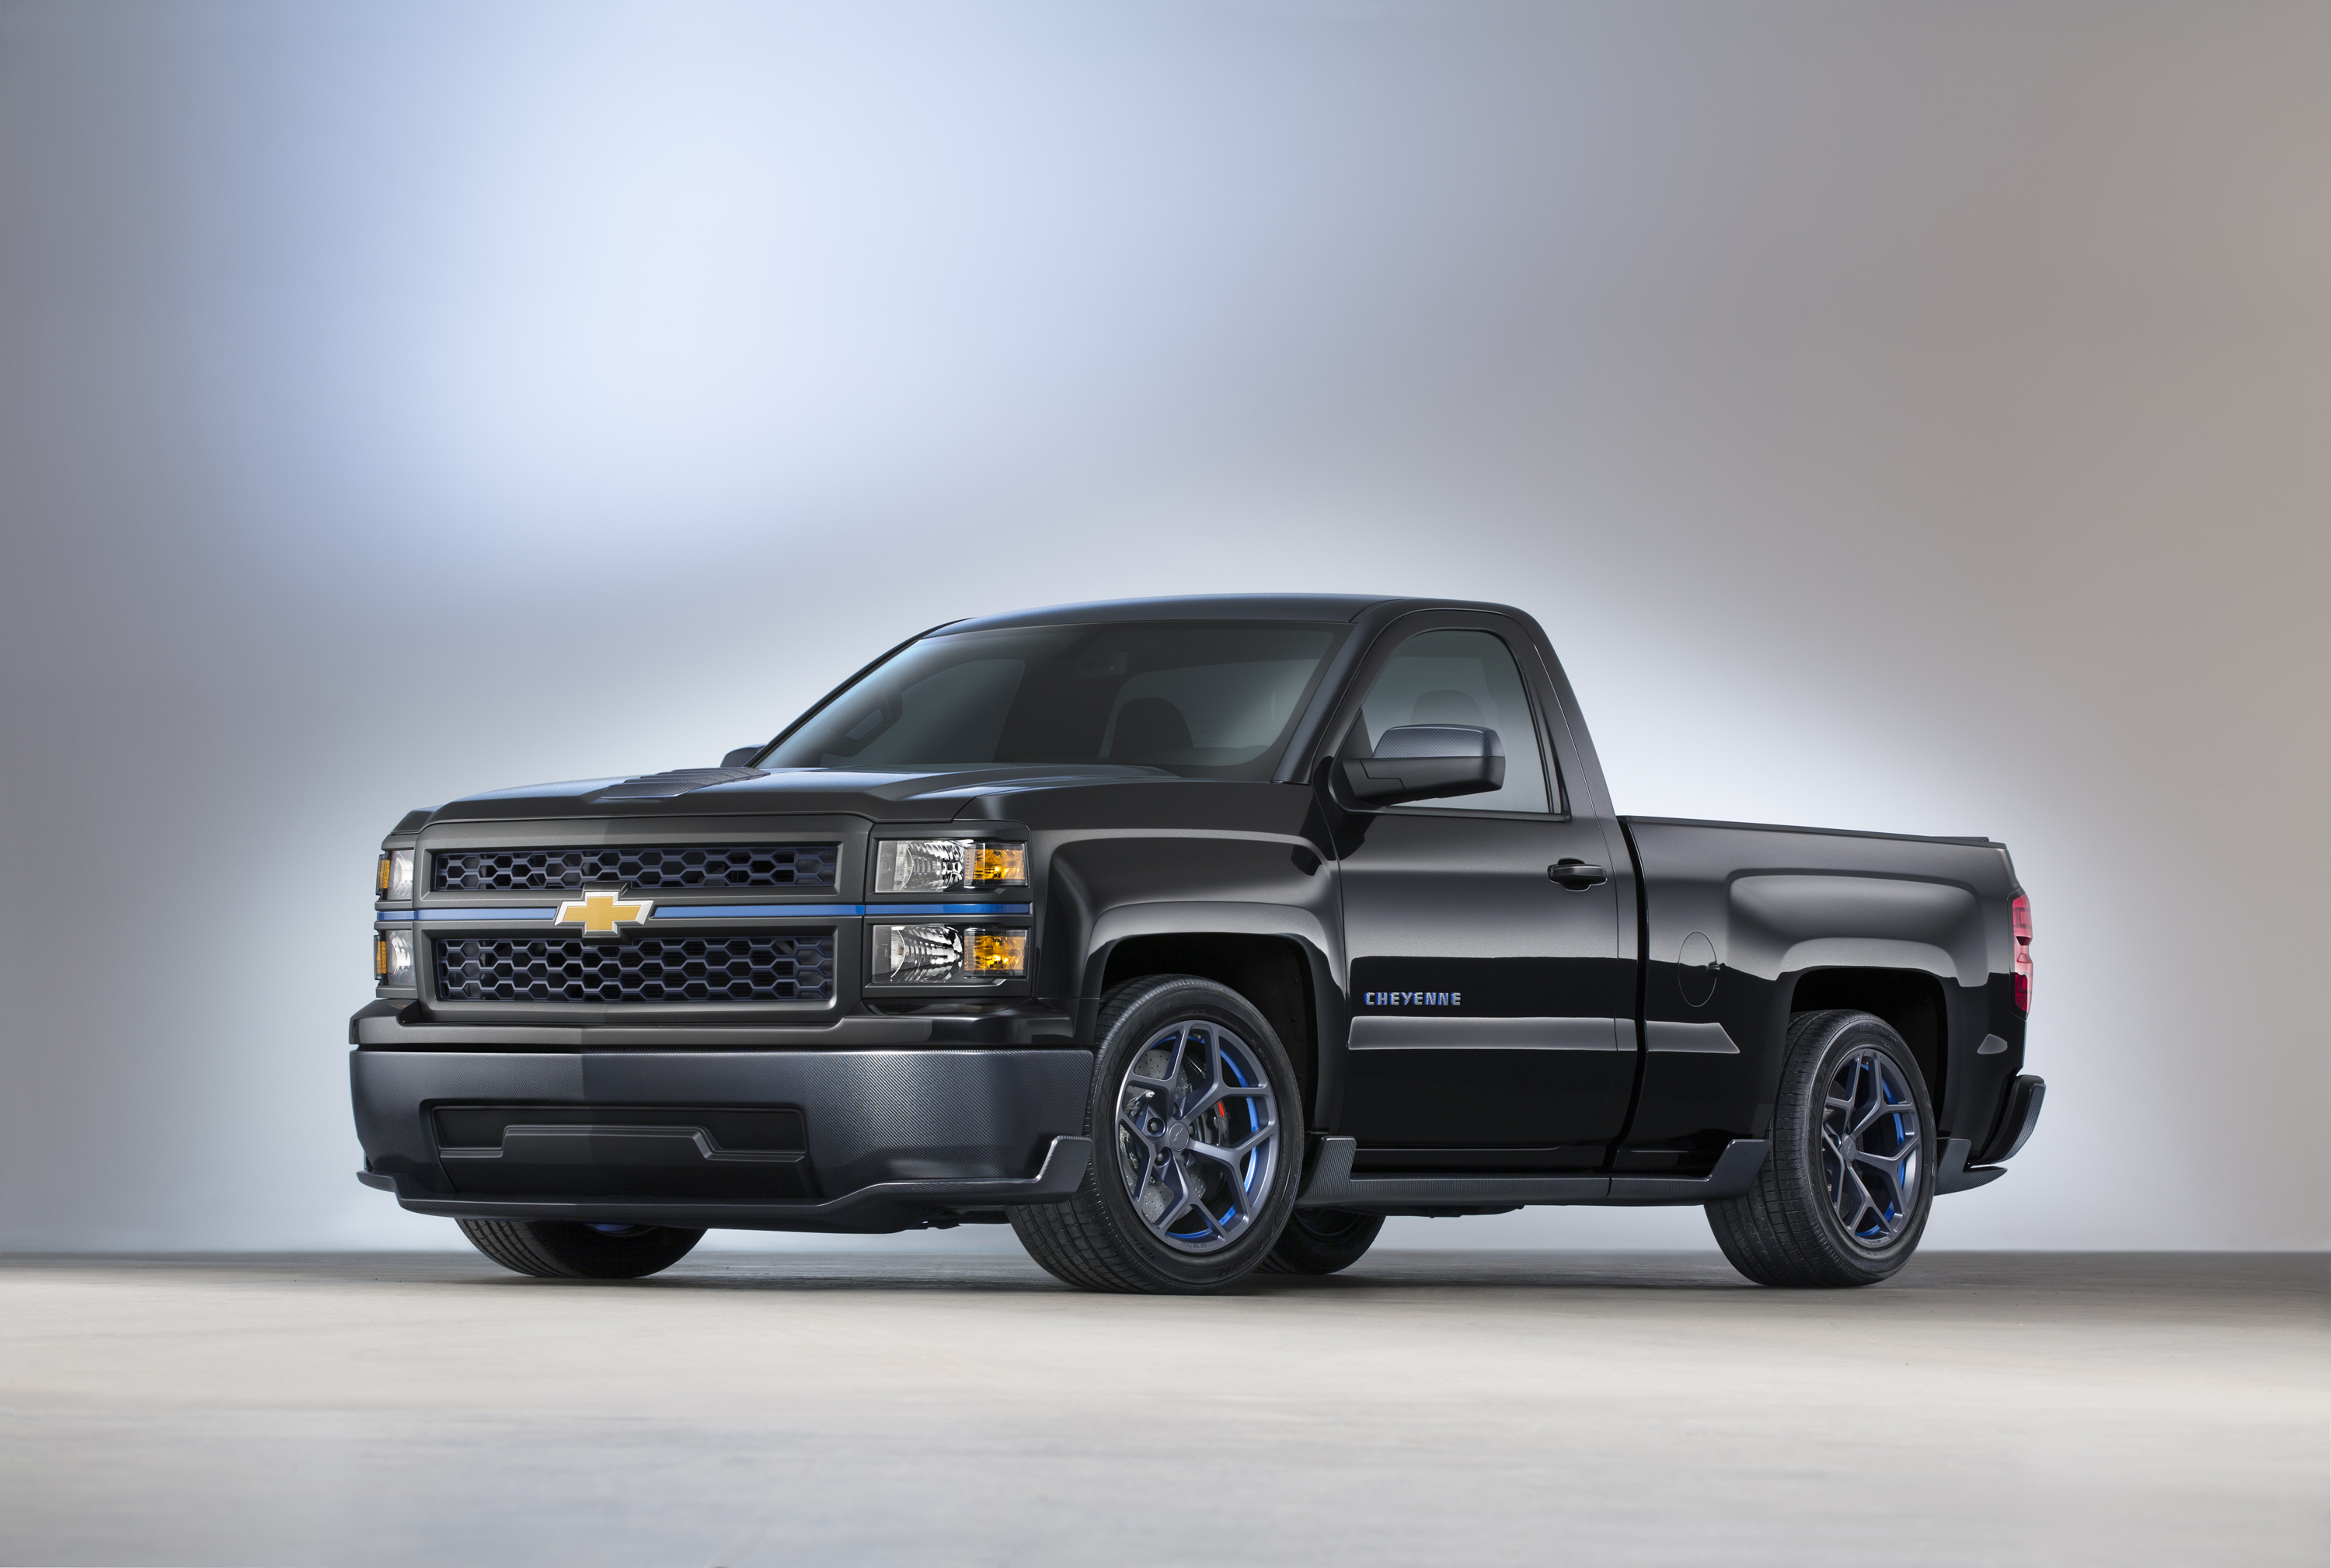 Silverado cheyenne concept mini mass max performance